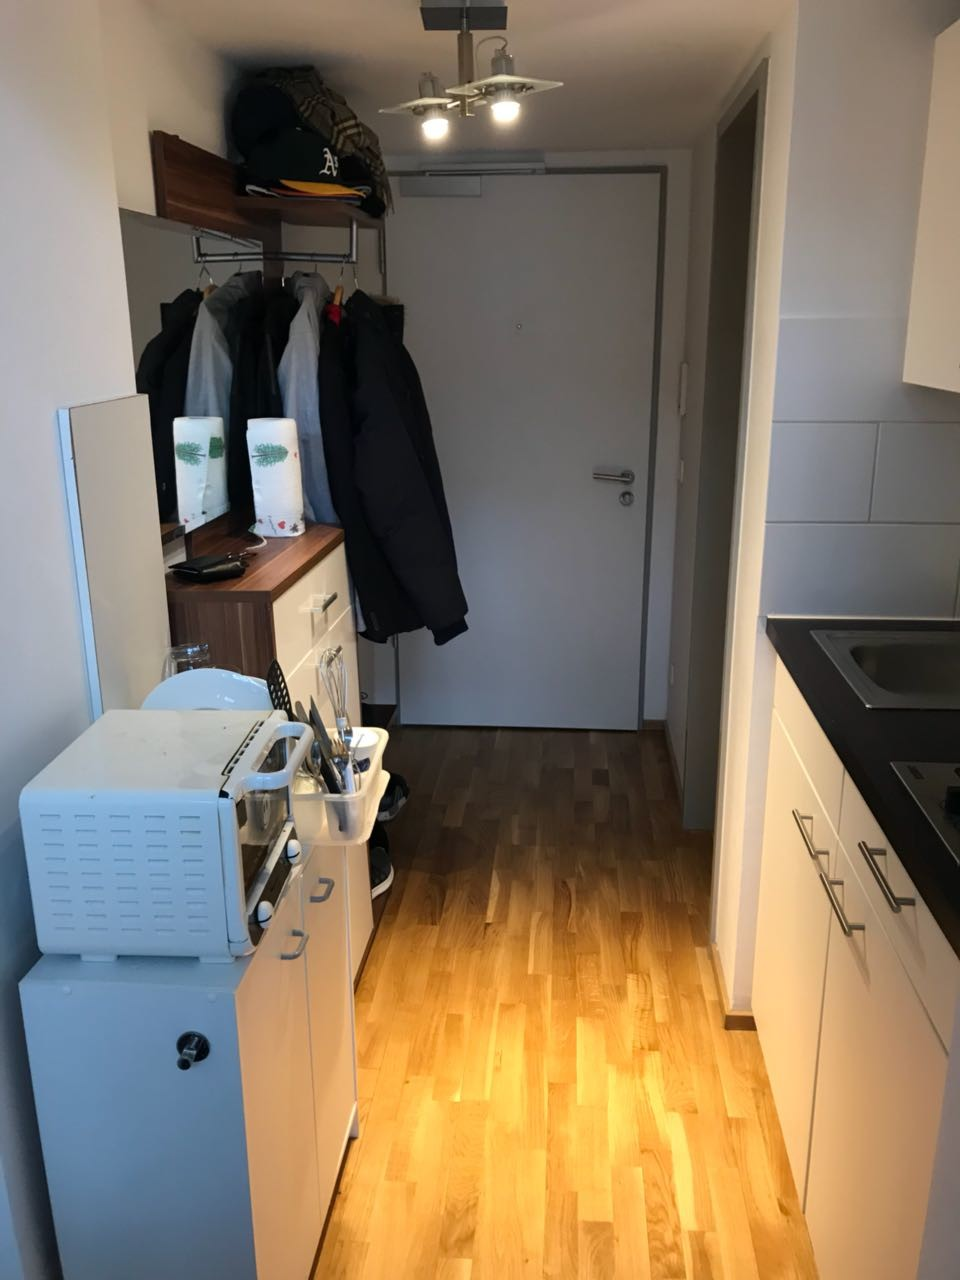 1,5 room/29sqm student apartment fully furbished in Munich ...